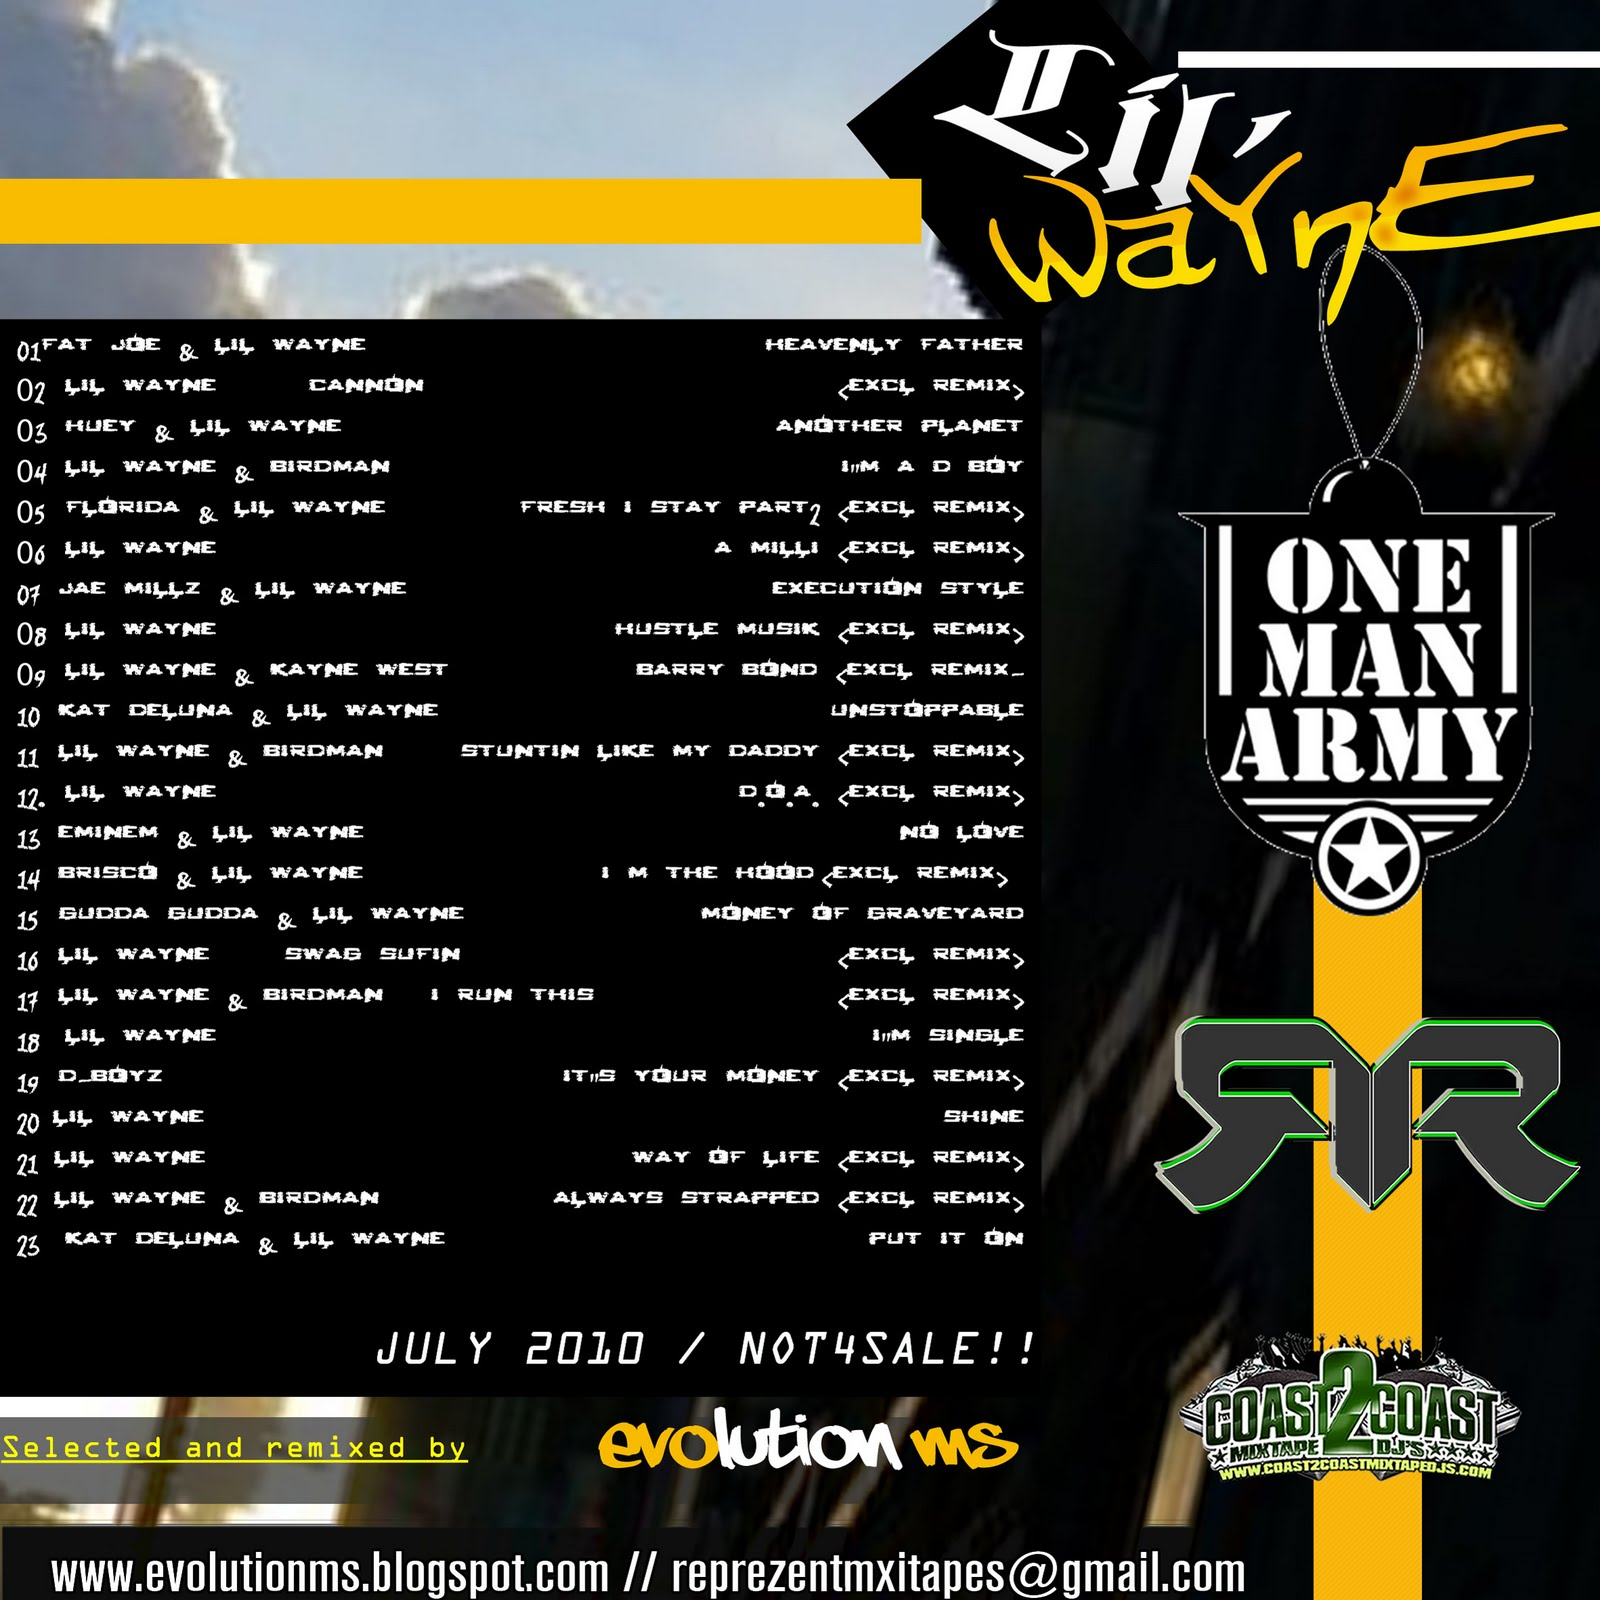 http://1.bp.blogspot.com/_hLZYGPY7hGk/TFLghX1_7aI/AAAAAAAAB1o/MjfNqTFTTto/s1600/Backover+Lil+Wayne+-+OneManArmy+mixtape+by+EVOLUTIONMS.jpg